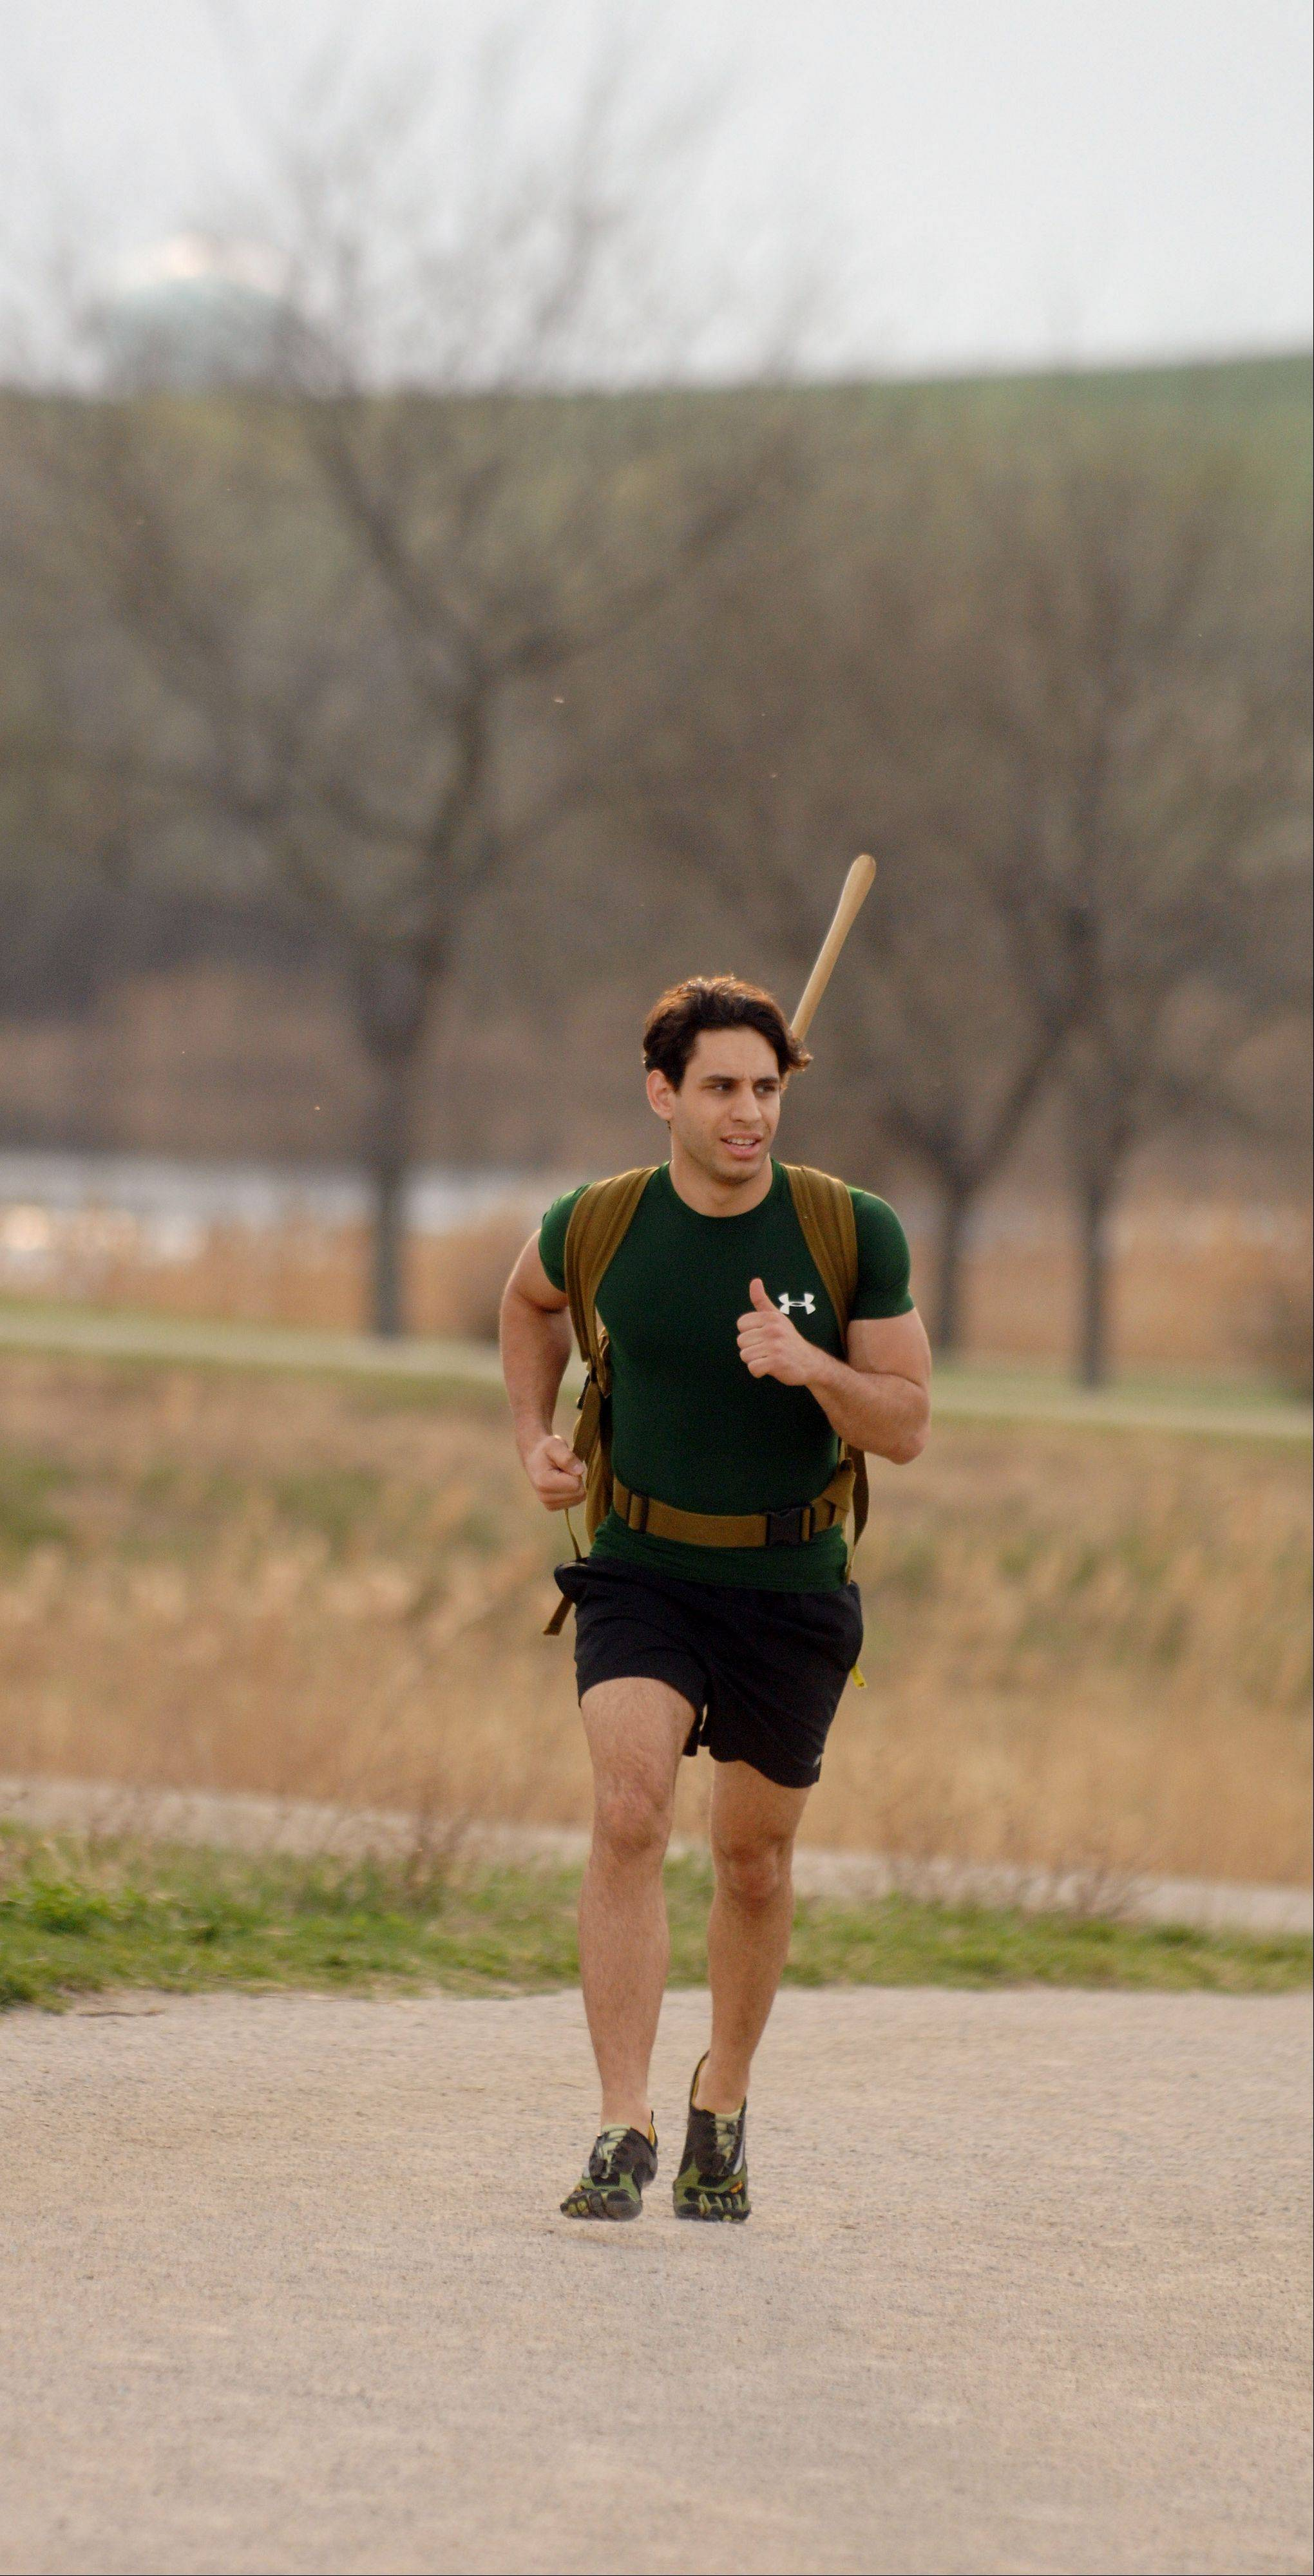 Anthony Matesi of Carol Stream runs laps at Mallard Lake Forest Preserve near Hanover Park as part of his training for the Spartan Death Race in June.